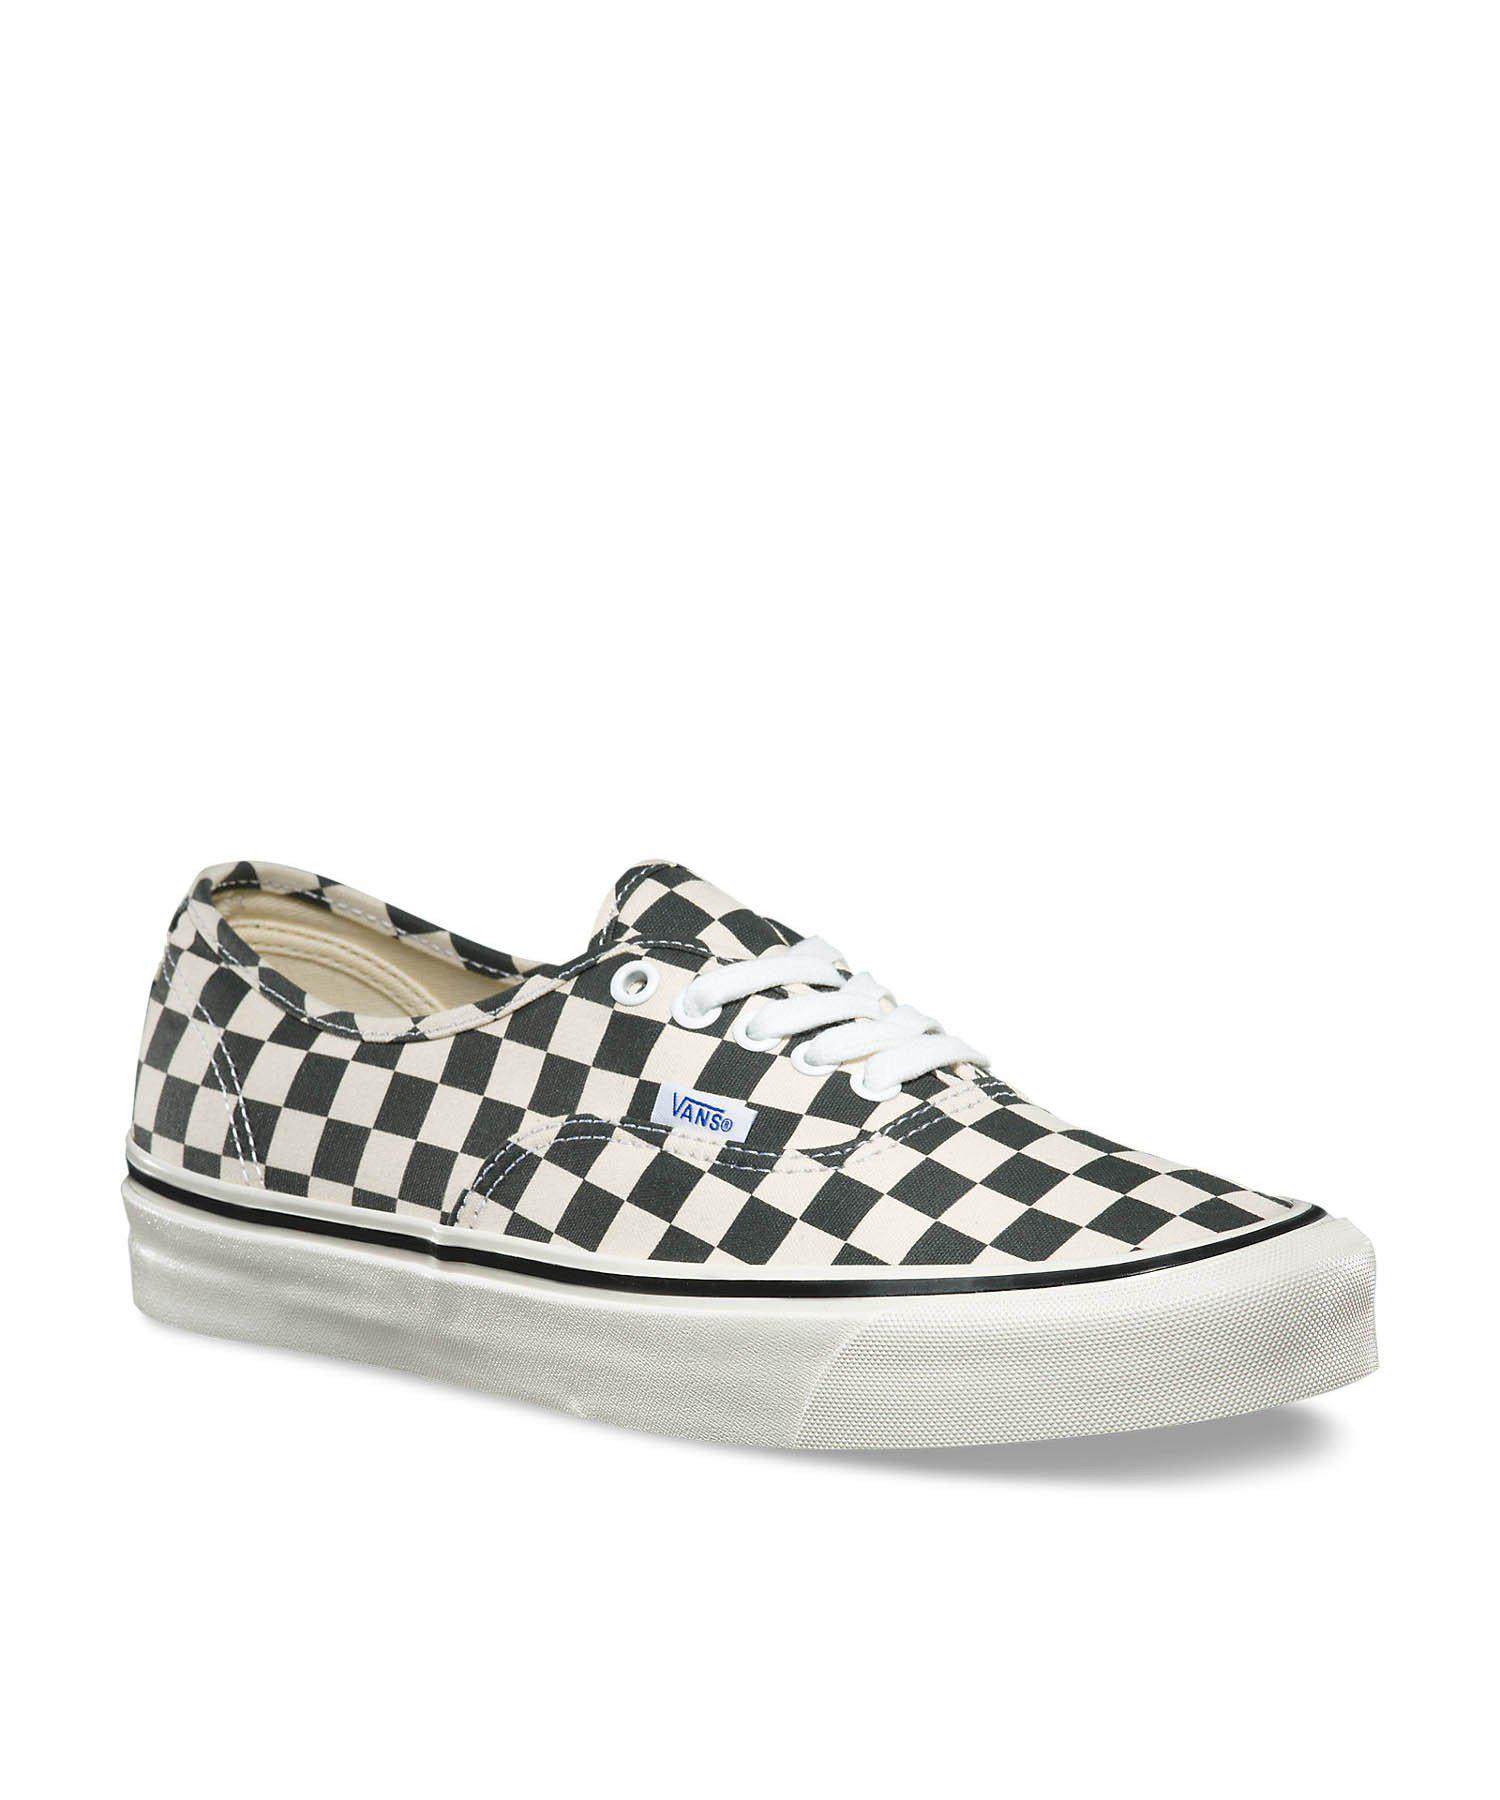 833d0d658e46 Lyst - Vans Anaheim Factory Authentic 44 Dx In Black Checkerboard in ...